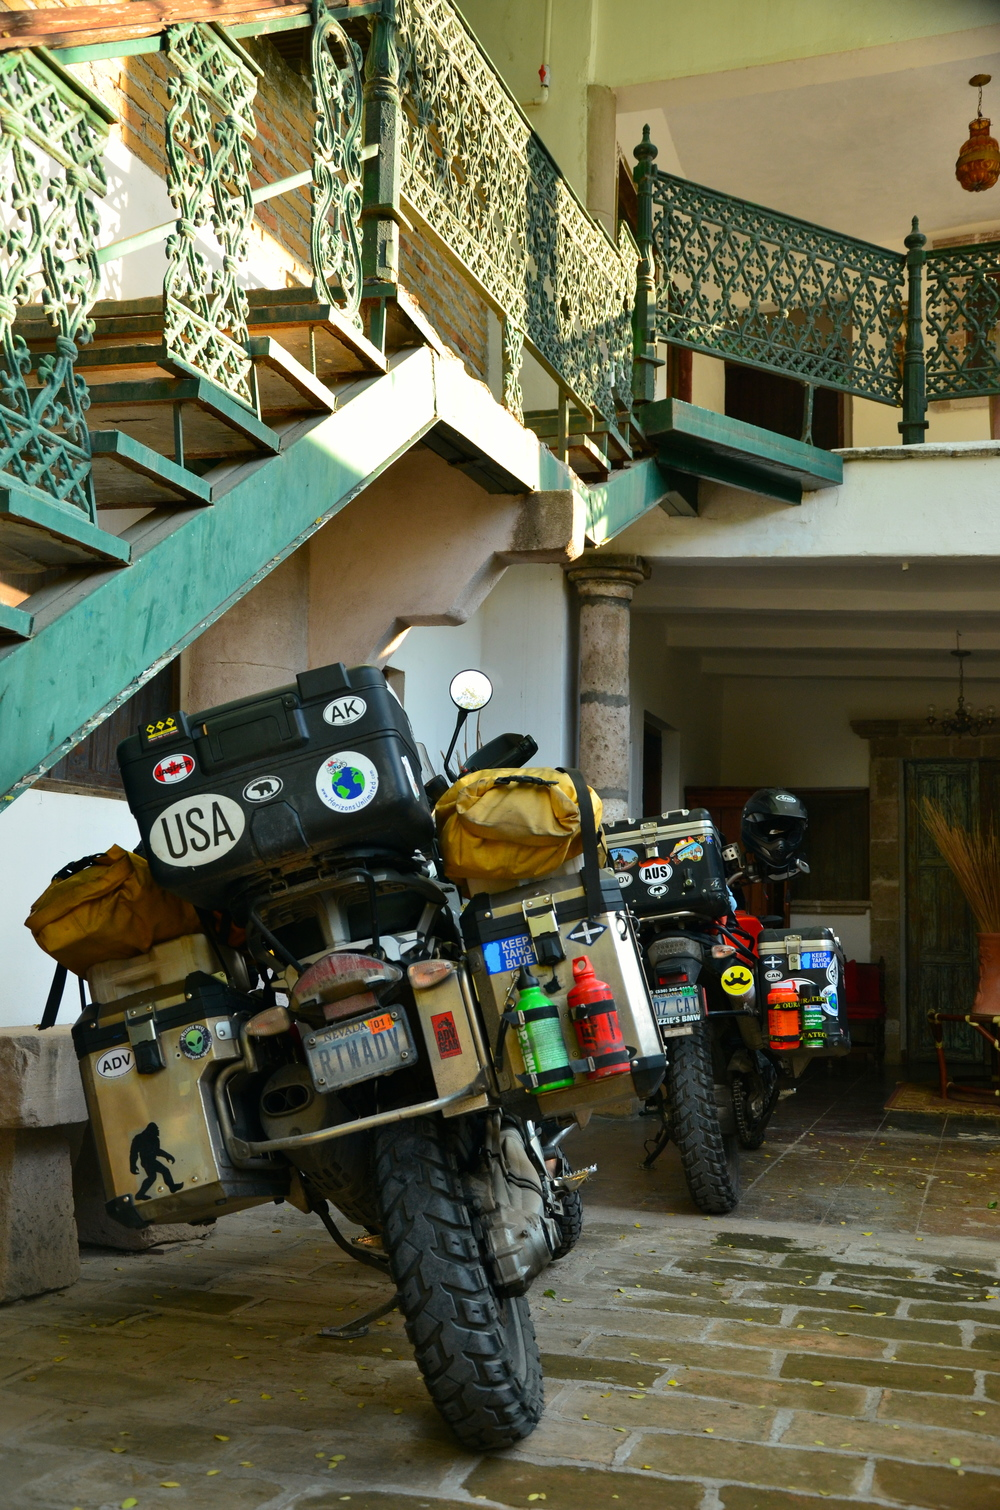 Our bikes safe and secure at the rear of the property.